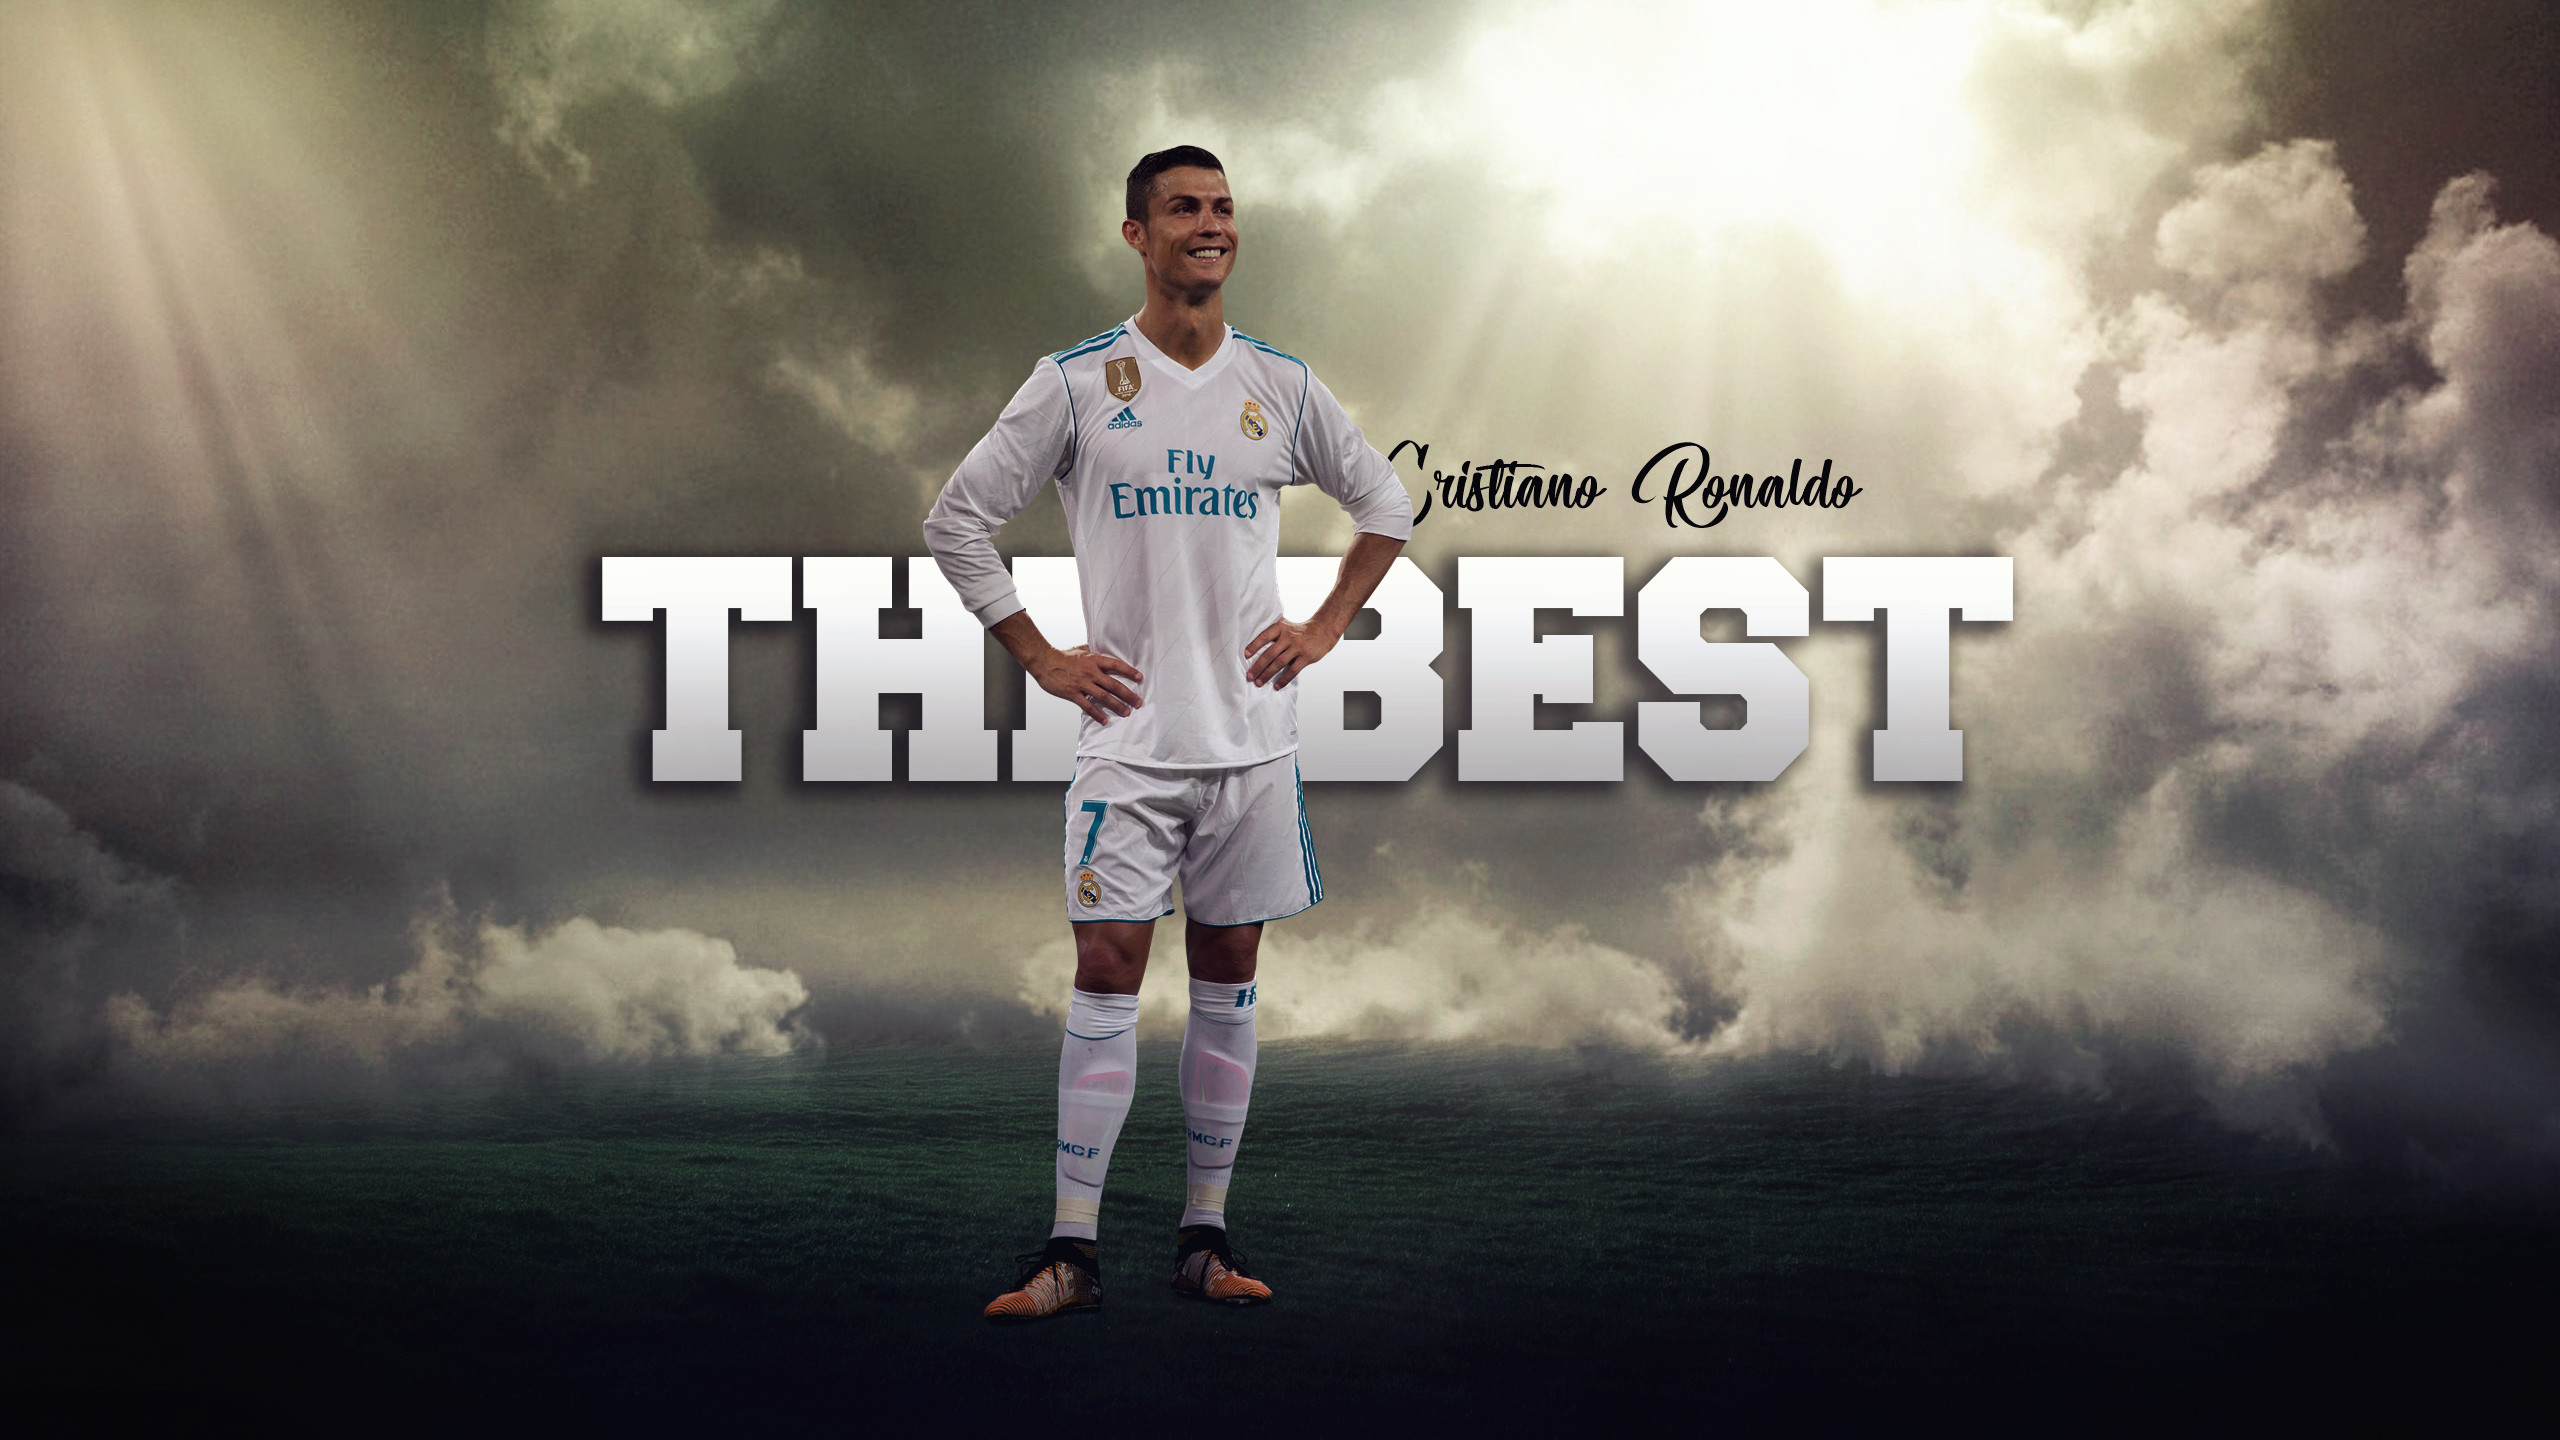 separation shoes 846c7 1cf8d Real Madrid Cristiano Ronaldo Wallpaper (65+ pictures)